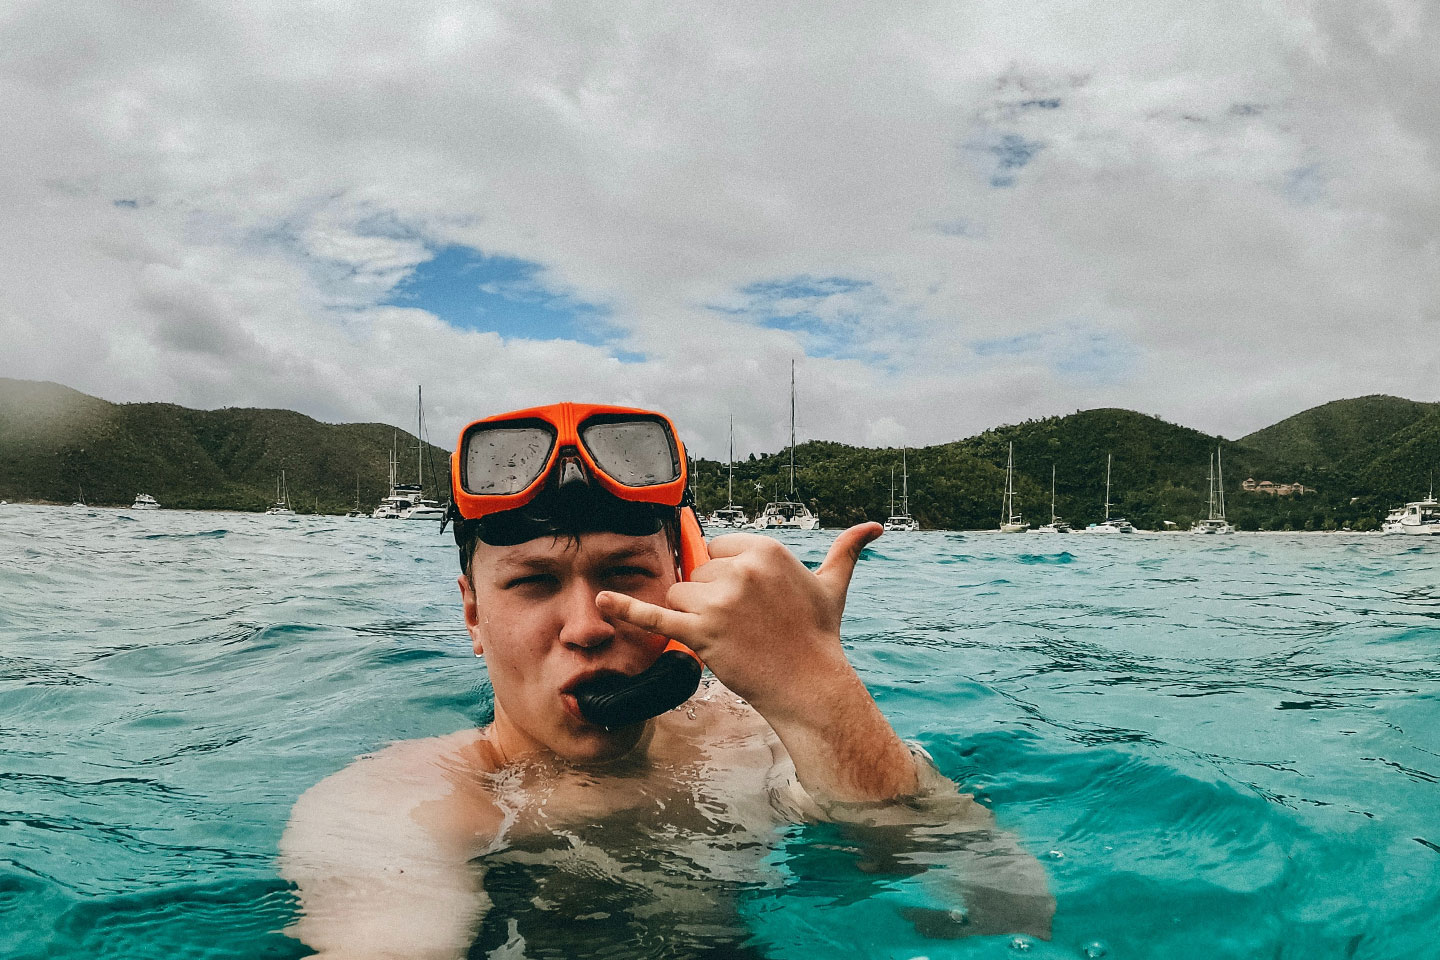 Snorkeling when its cloudy